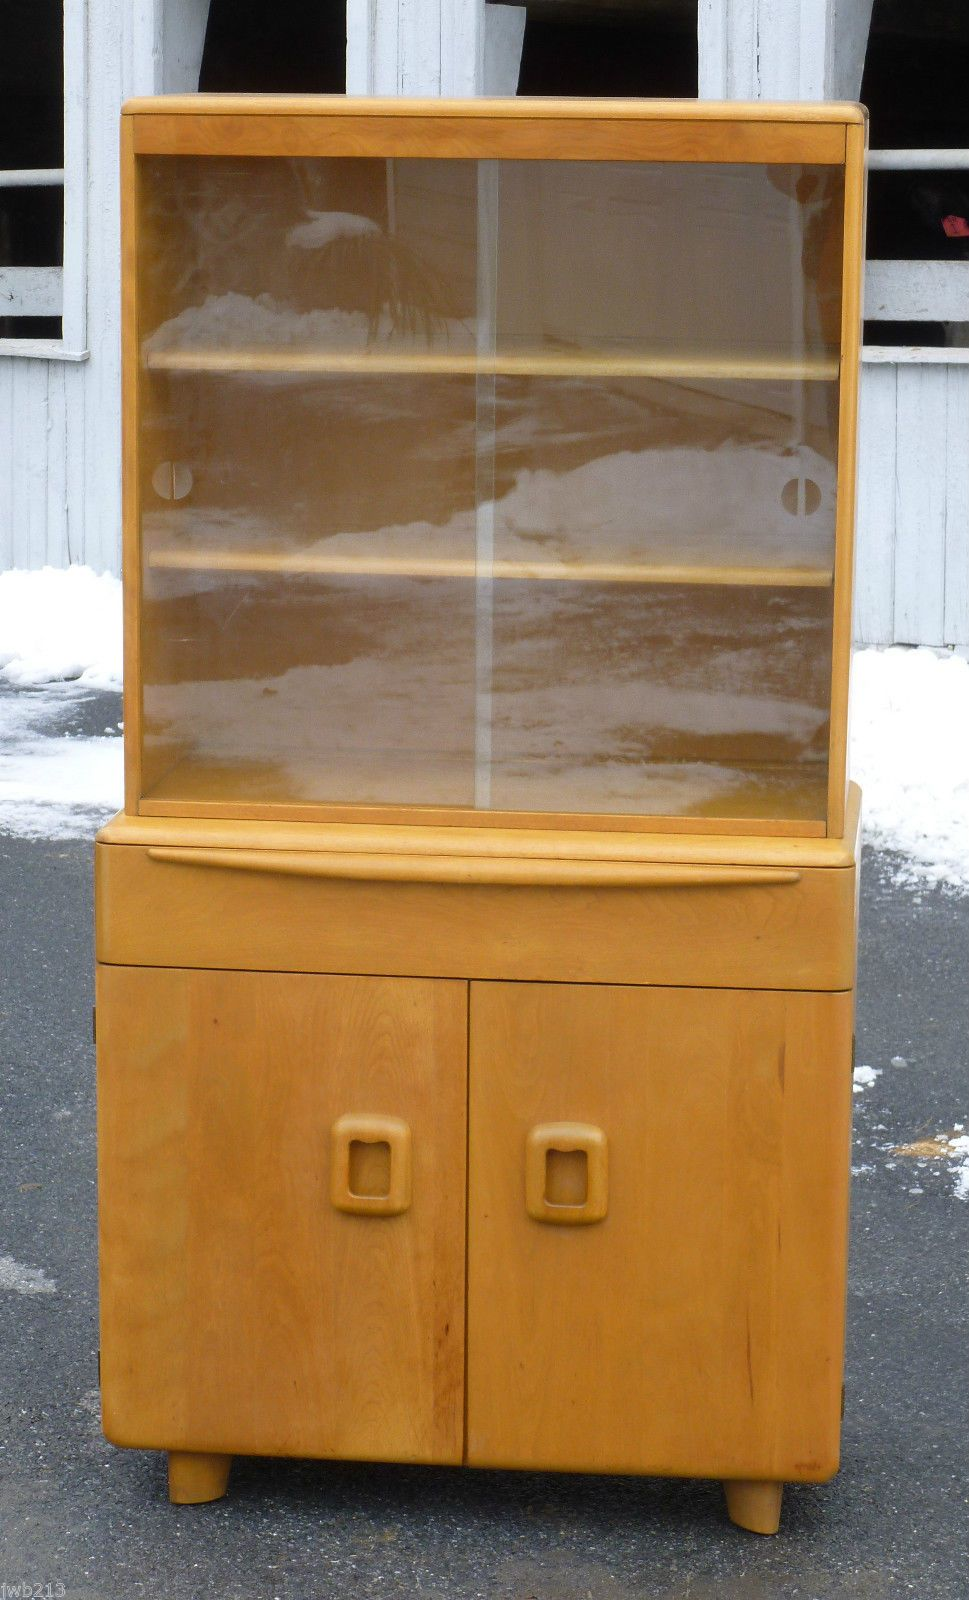 HEYWOOD WAKEFIELD CHINA CABINET On SERVER BASE   M175 On M190   ORIGINAL  WHEAT. 50s FurnitureAntique ...